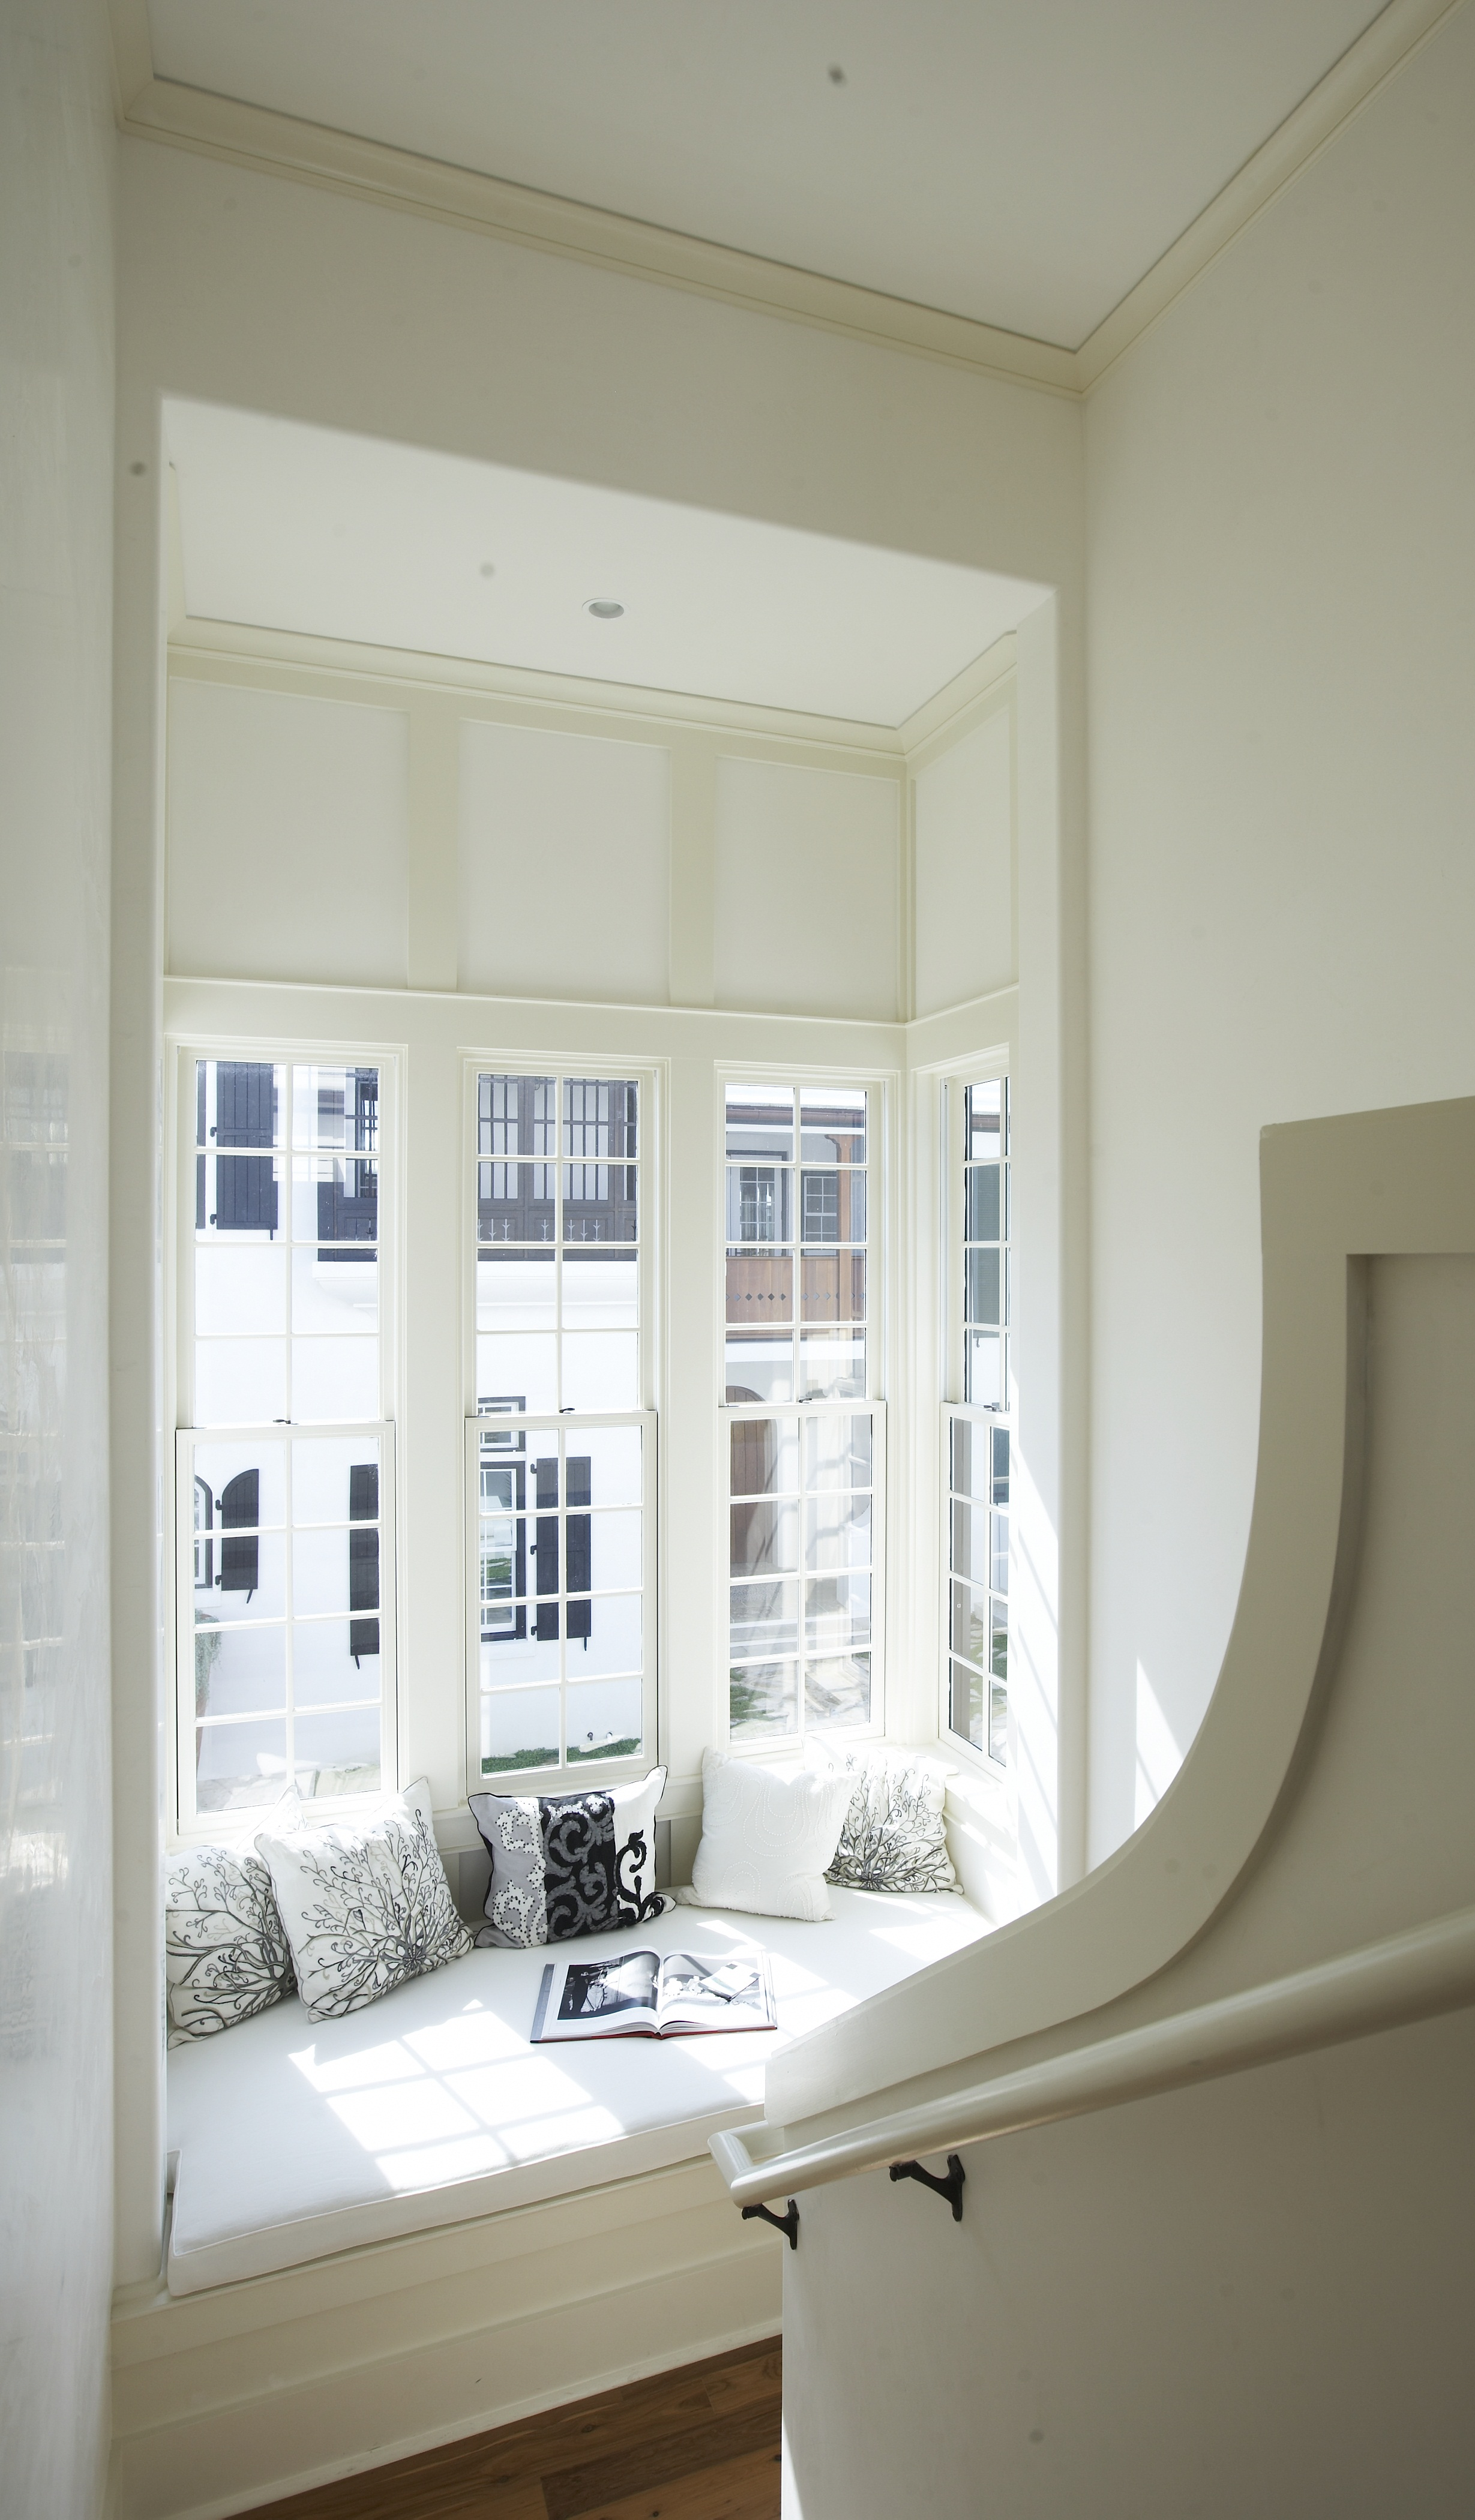 Top-27-Cozy-Reading-Nooks-That-Will-Inspire-You-To-Design-One-Yourself-In-Your-Home-homesthetics-6